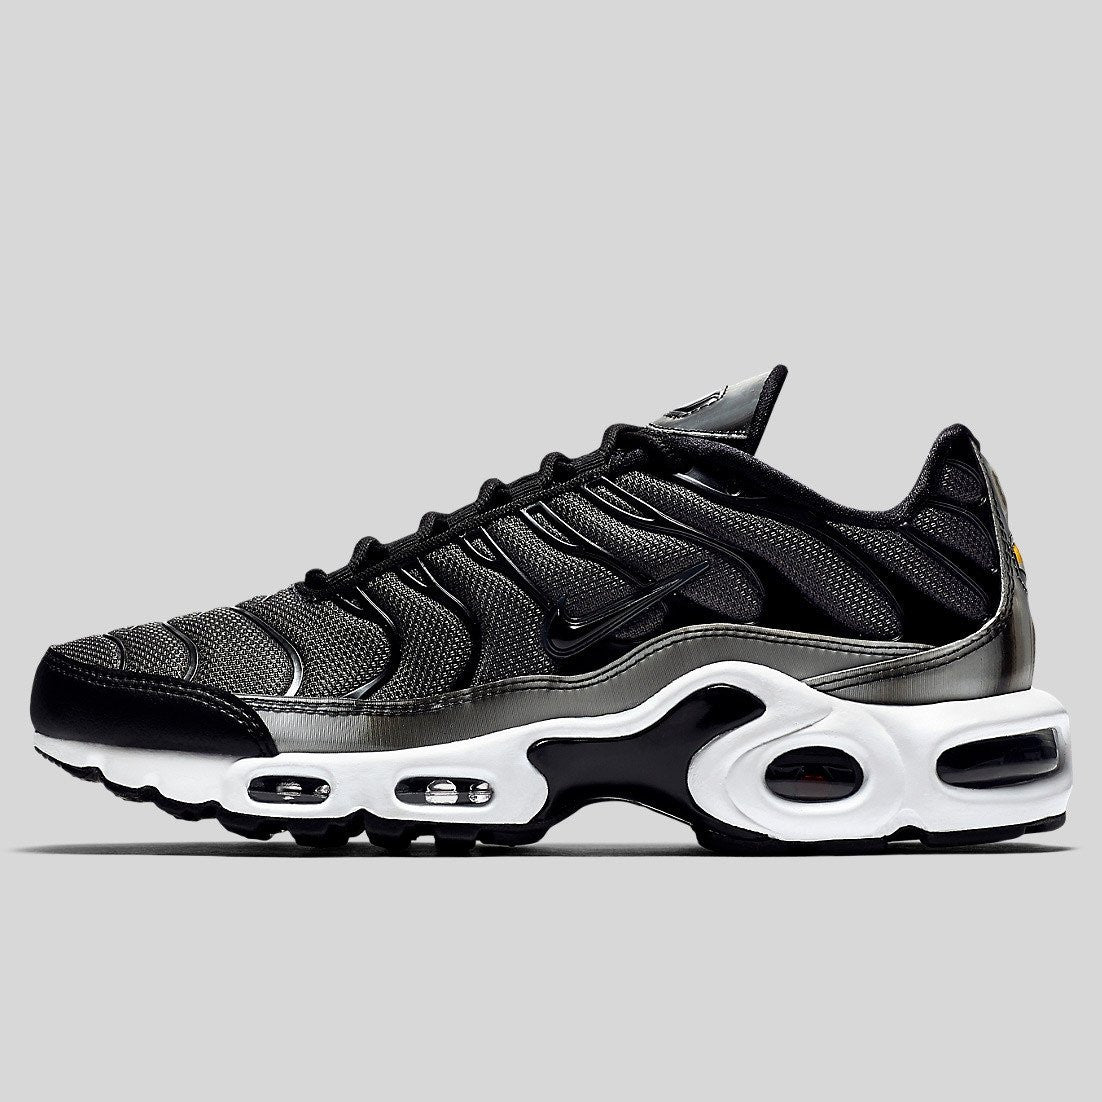 promo code 22c9c 48508 Nike Wmns Air Max Plus SE Black Anthracite White (862201-003)